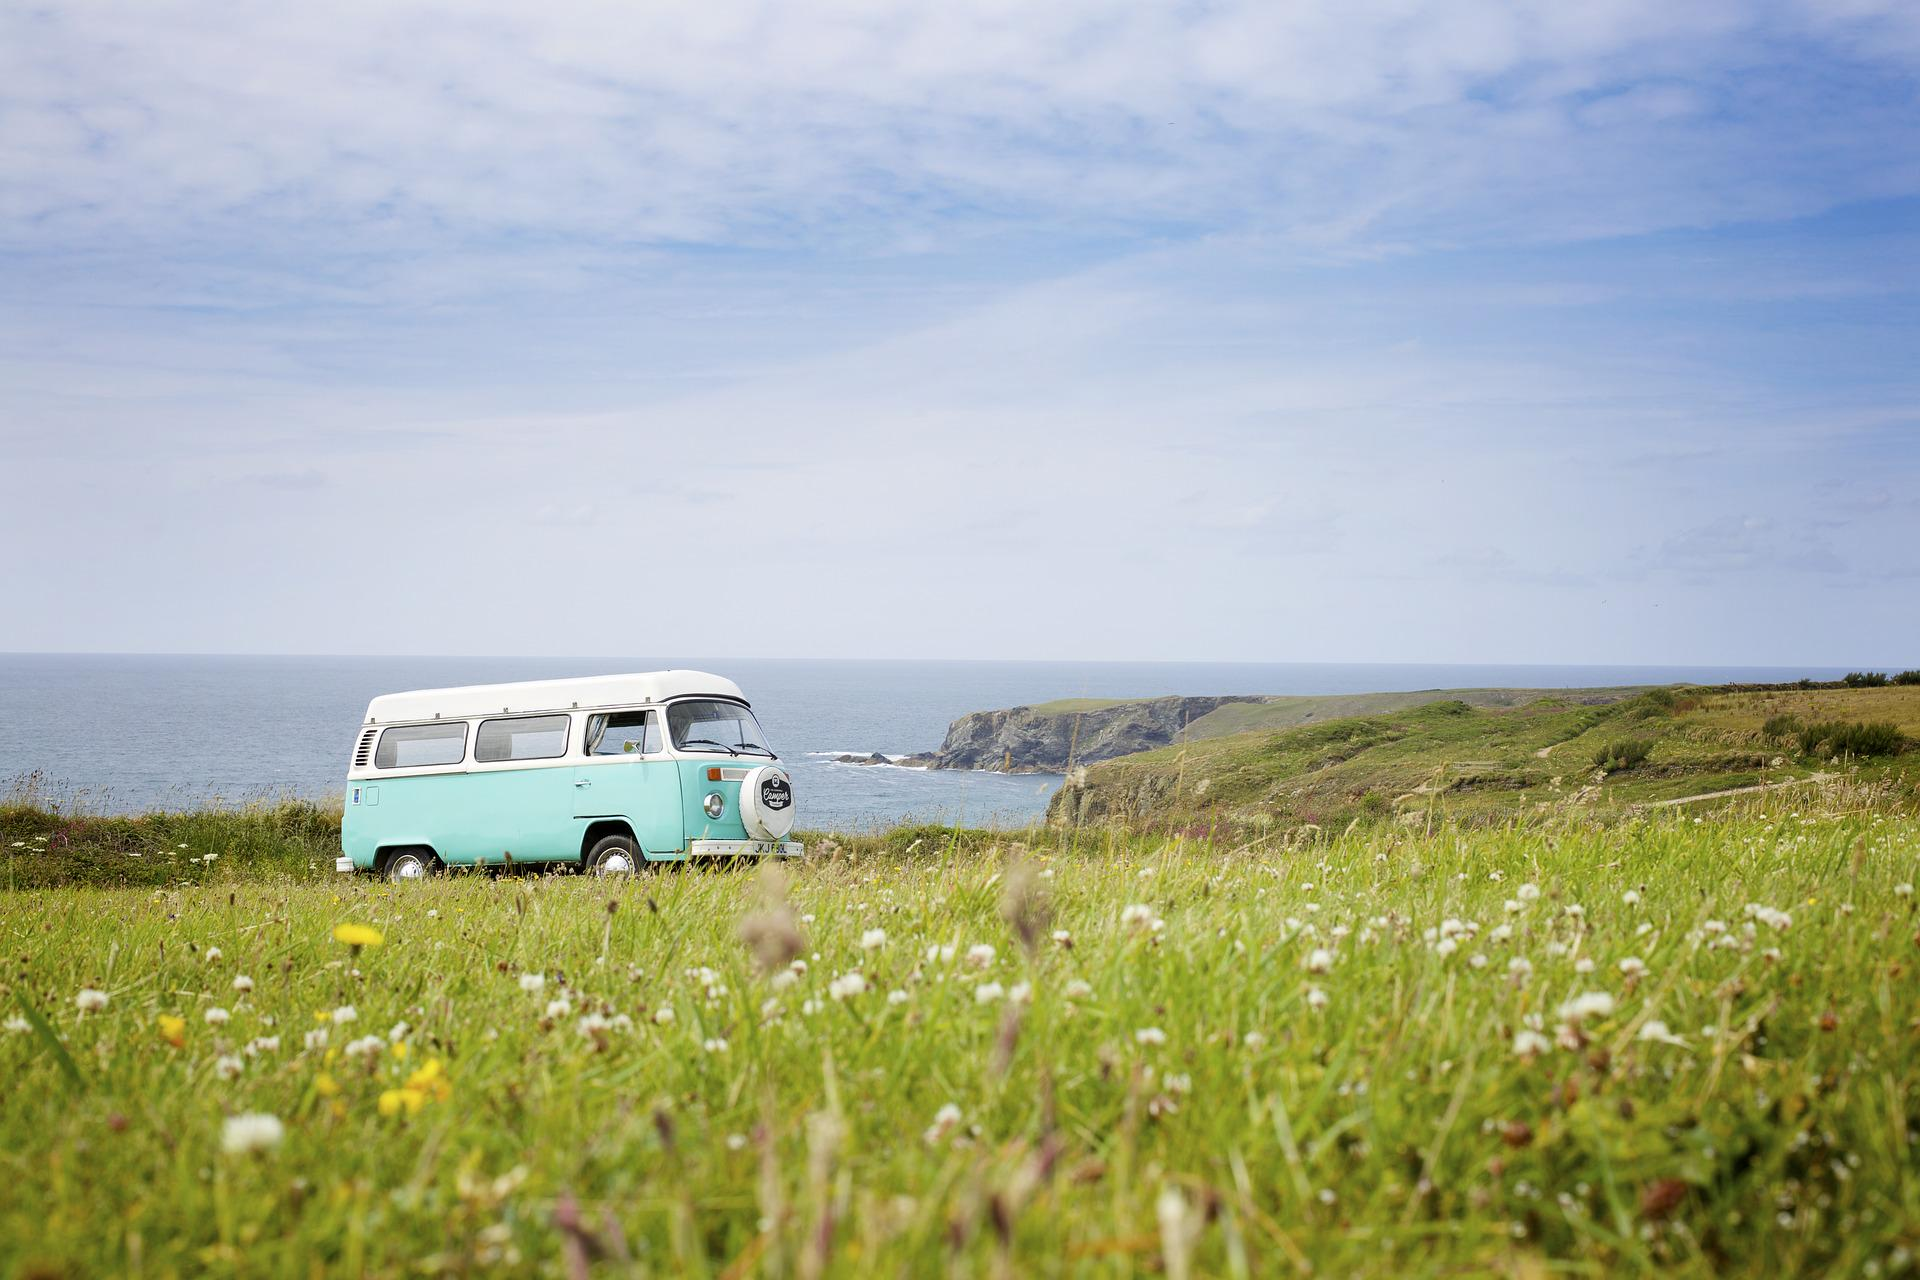 Campervan Hire | The best Campervan, RV or Motorhome for your campervan holiday. Campervan hire in the UK and France, Spain, Italy.